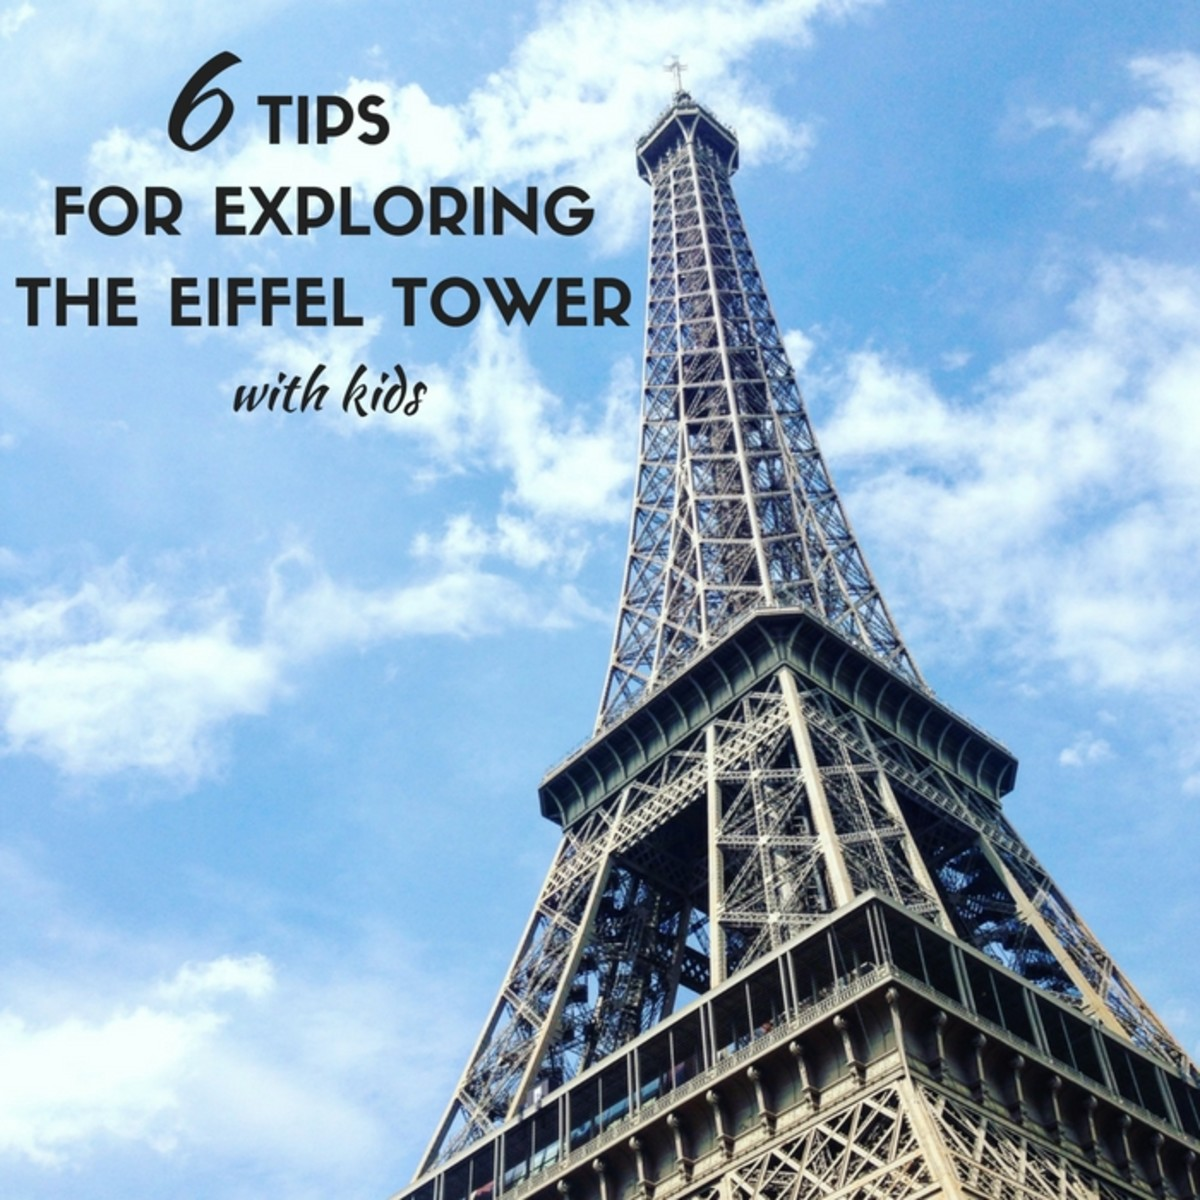 6 Tips for Exploring the Eiffel Tower with Kids